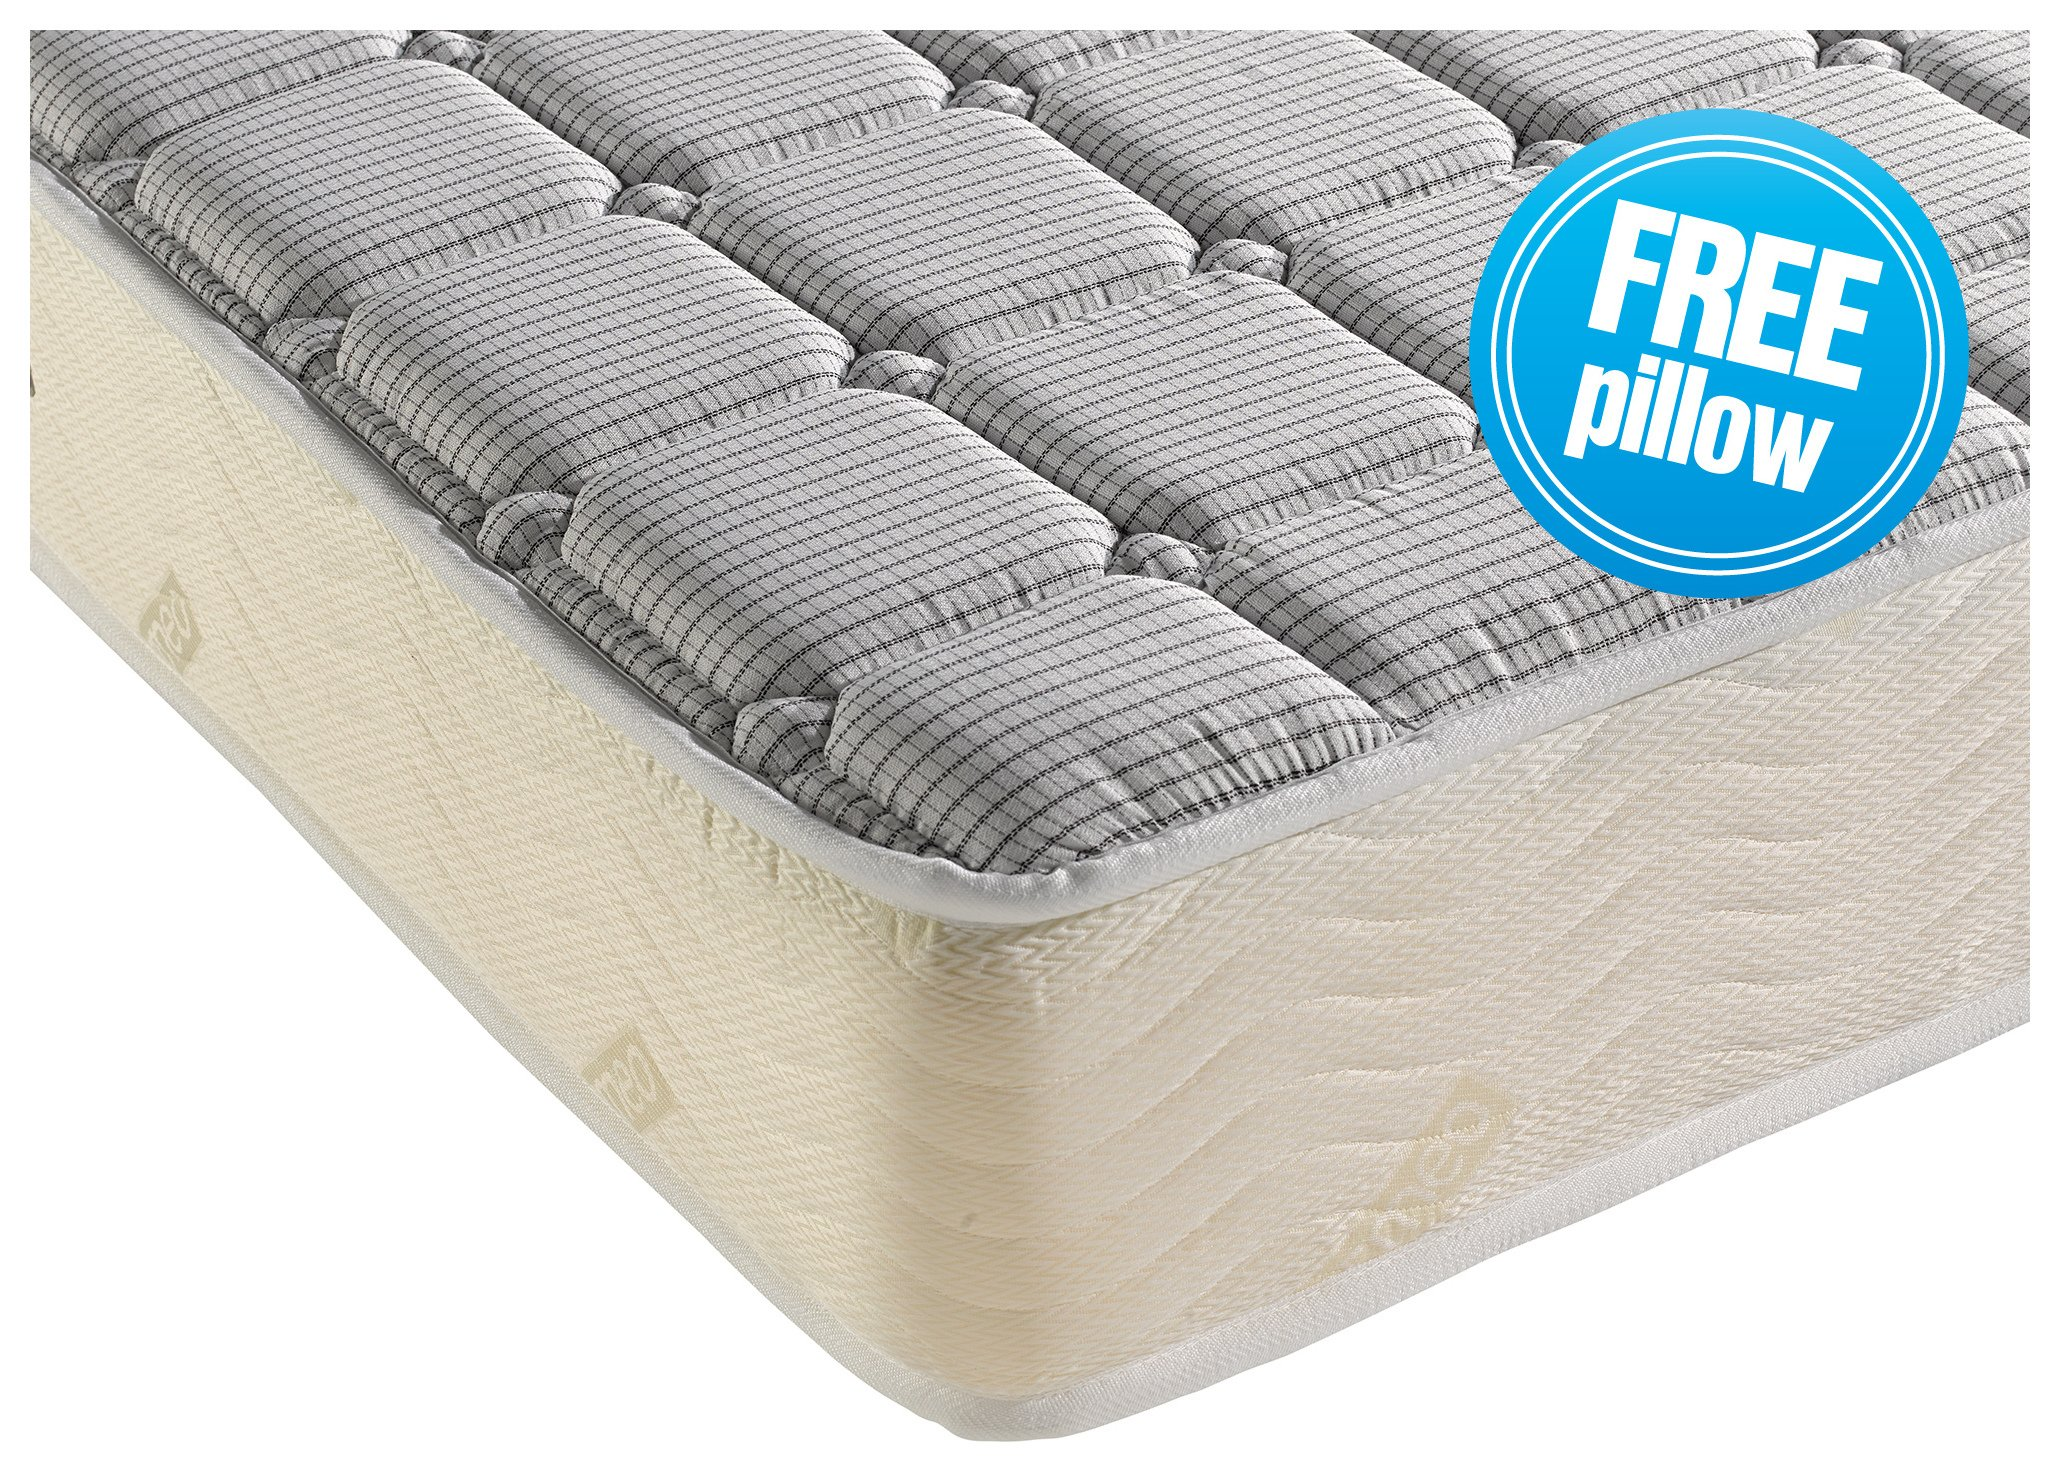 Dormeo deluxe memory foam double mattress gay times uk Double mattress memory foam